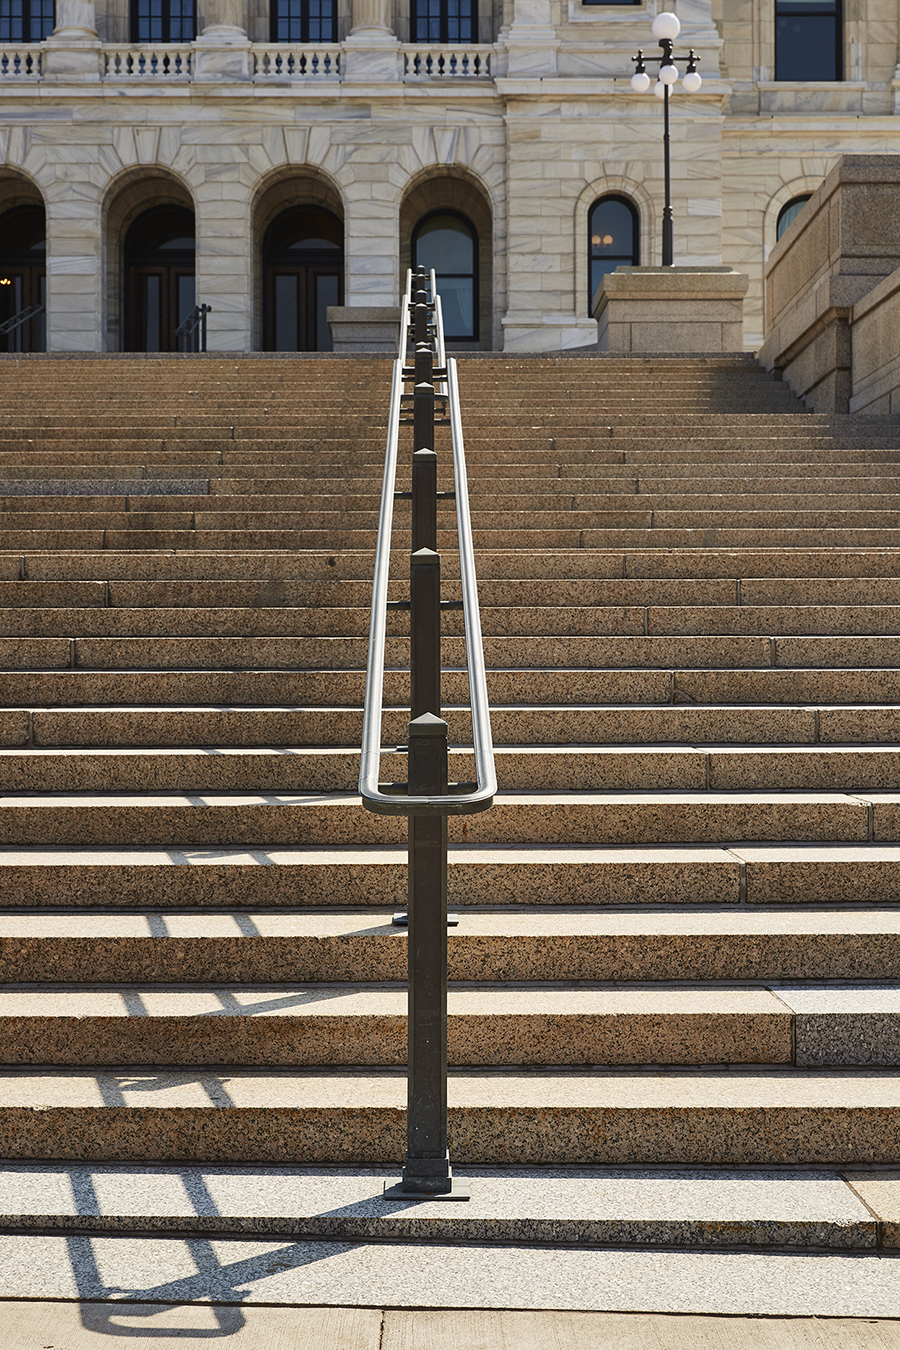 Bauer Metal Minnesota State Capitol Wrought Iron On-Site Welding Historic Preservation Restoriation Architectural Fabrication Minnesota Twin Cities Metalwork Luxury Railings Stairs Wrought Iron Fabricator Welding Twin Cities MN11.jpg